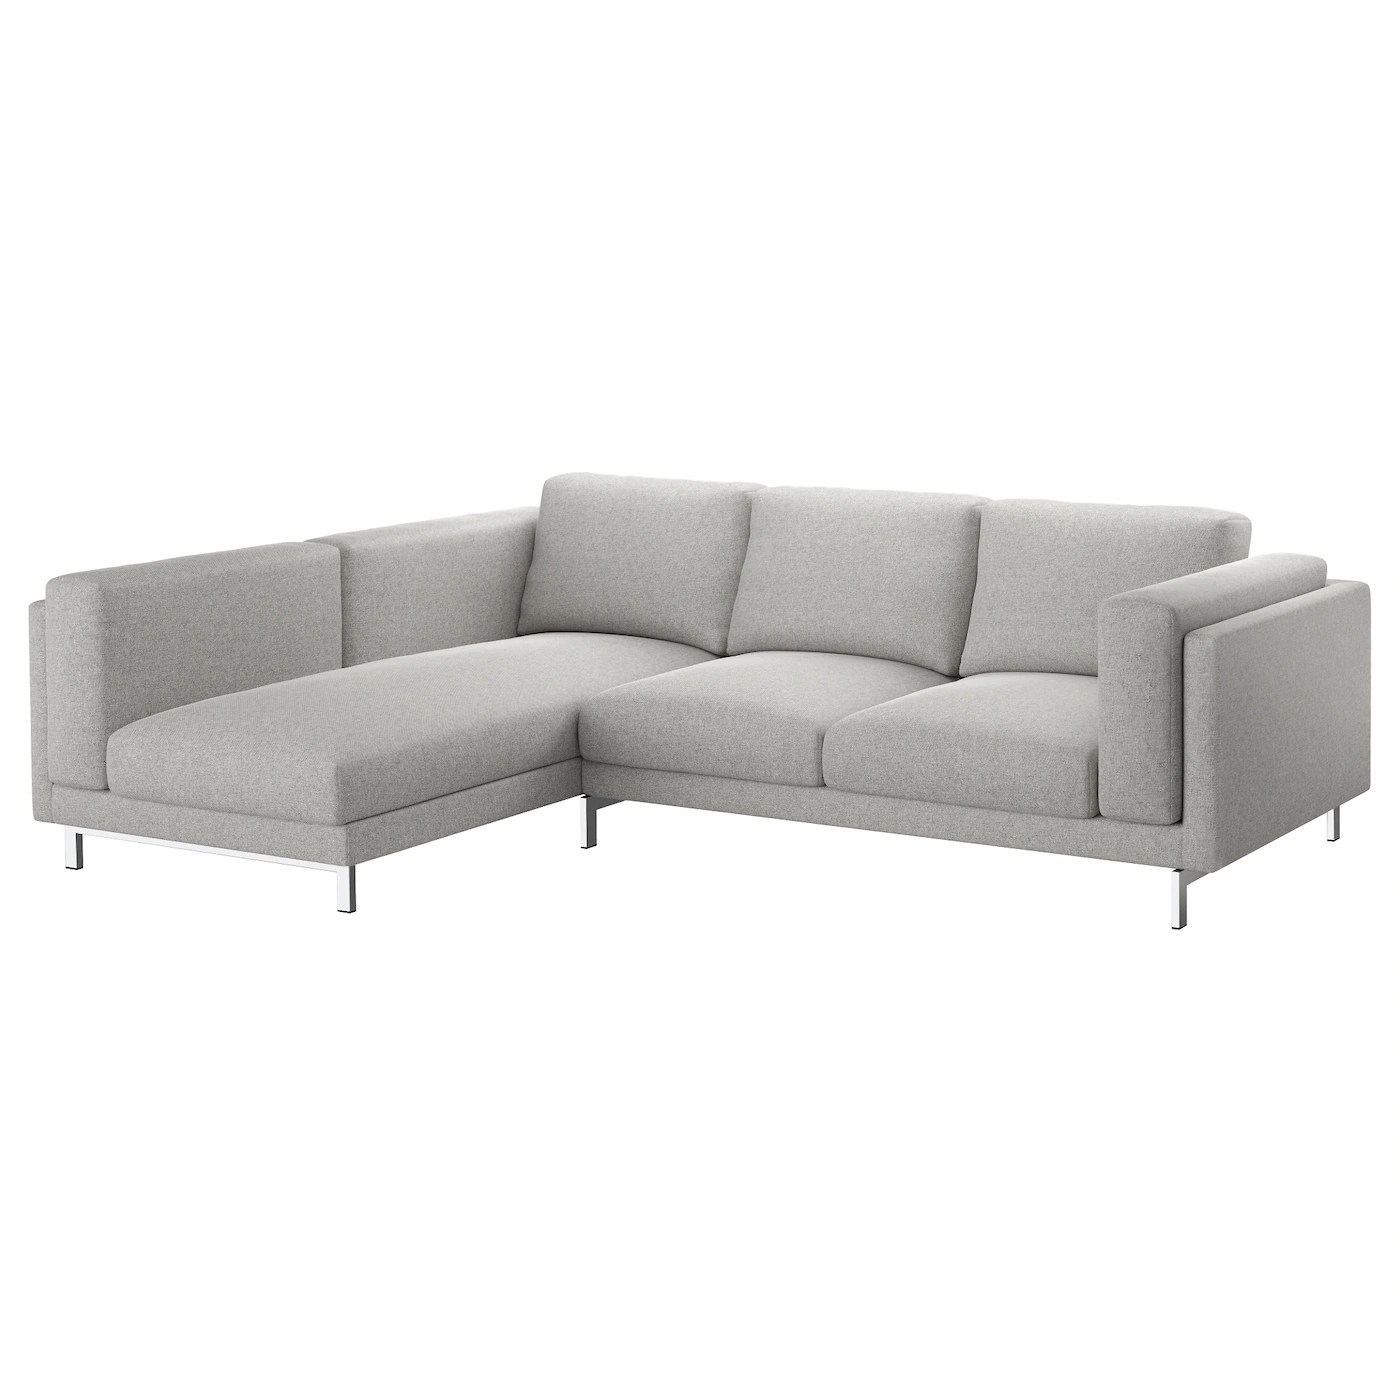 Ikea Sofa Nockeby Test Nockeby 3 Seat Sofa With Chaise Longue Left Tallmyra